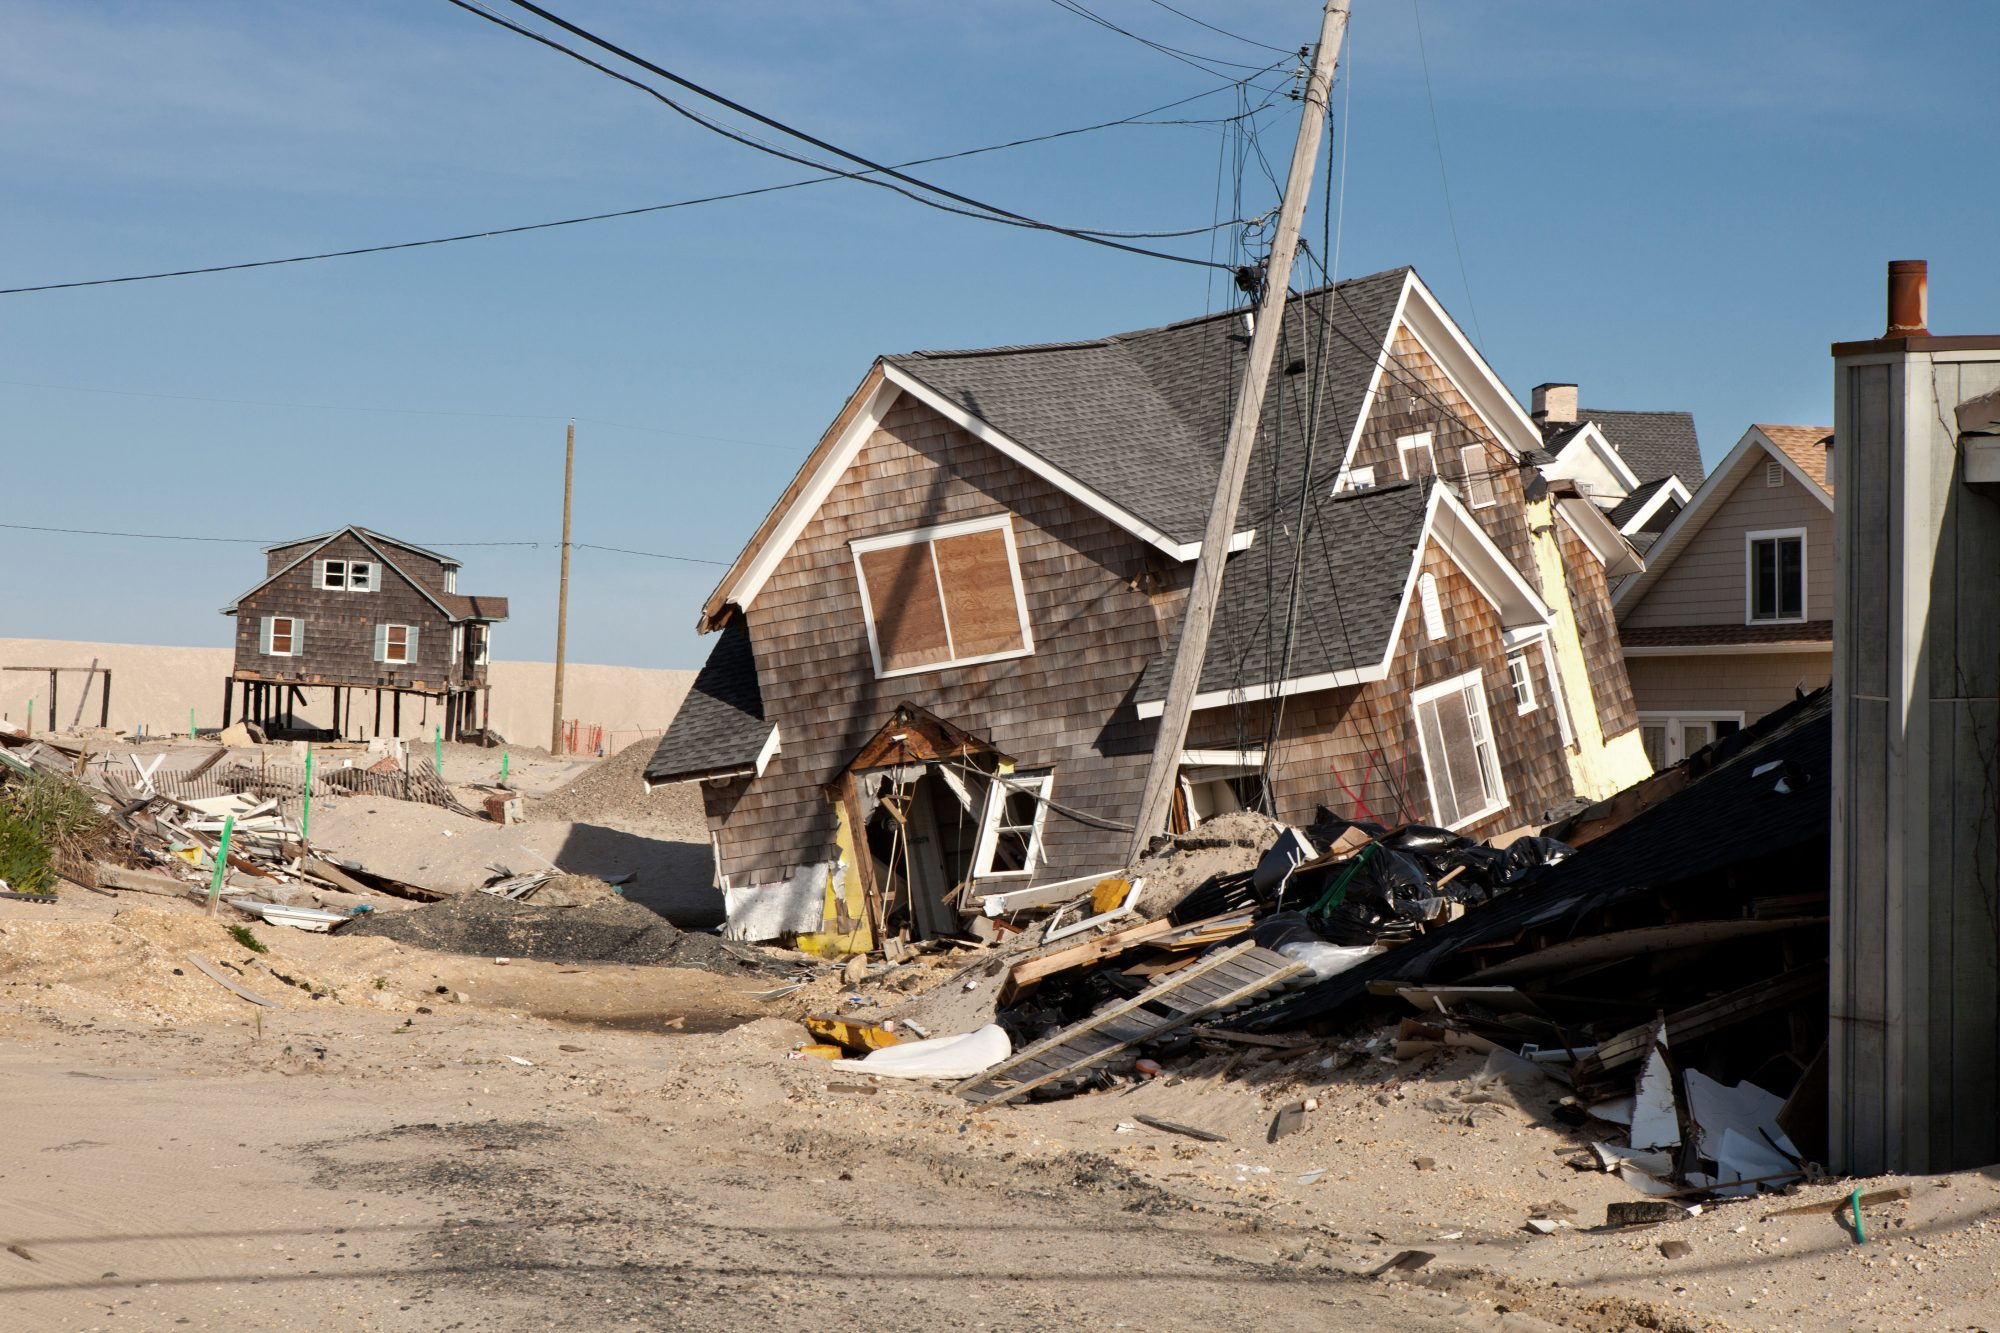 #12: Superstorm Sandy, 2012